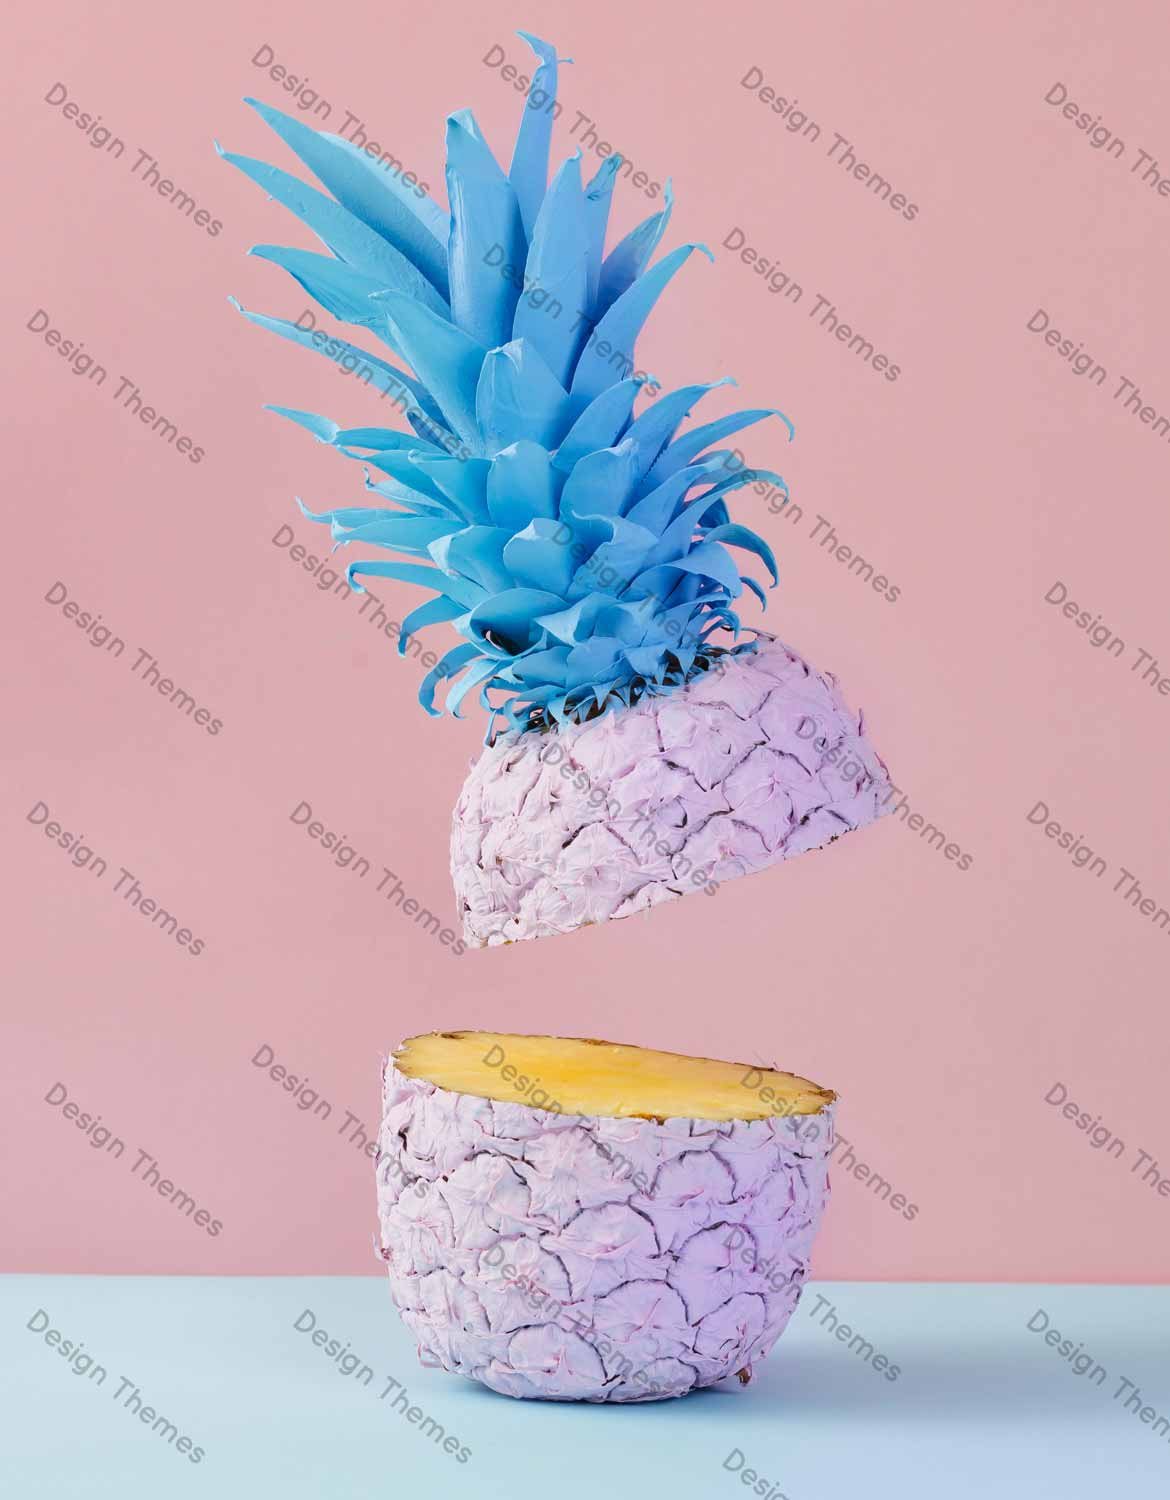 Surrealistic pineapple cut